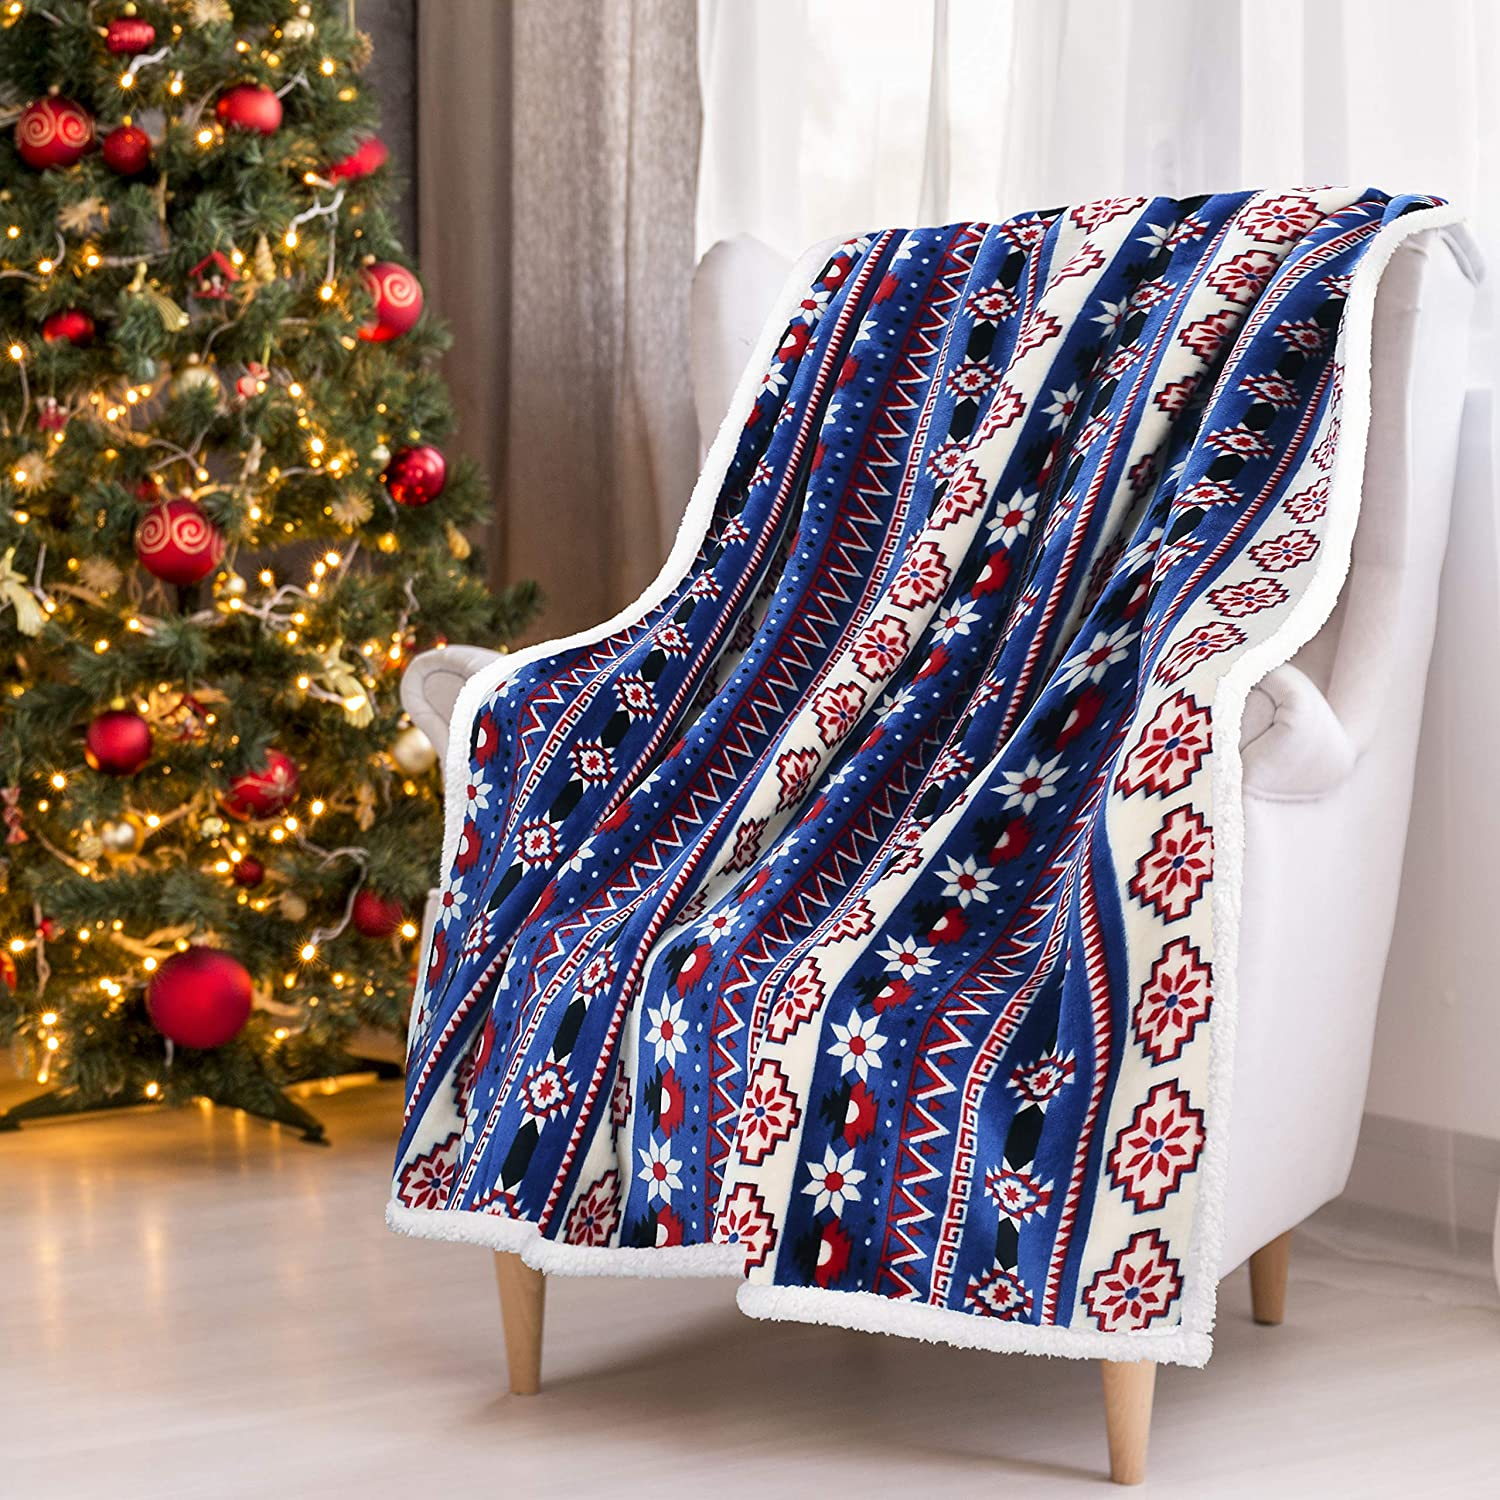 Blue Sherpa Throw Blanket, Super Soft Warm Cozy Reversible Fuzzy Fleece Snowflake Patterns Holiday Blanket 50